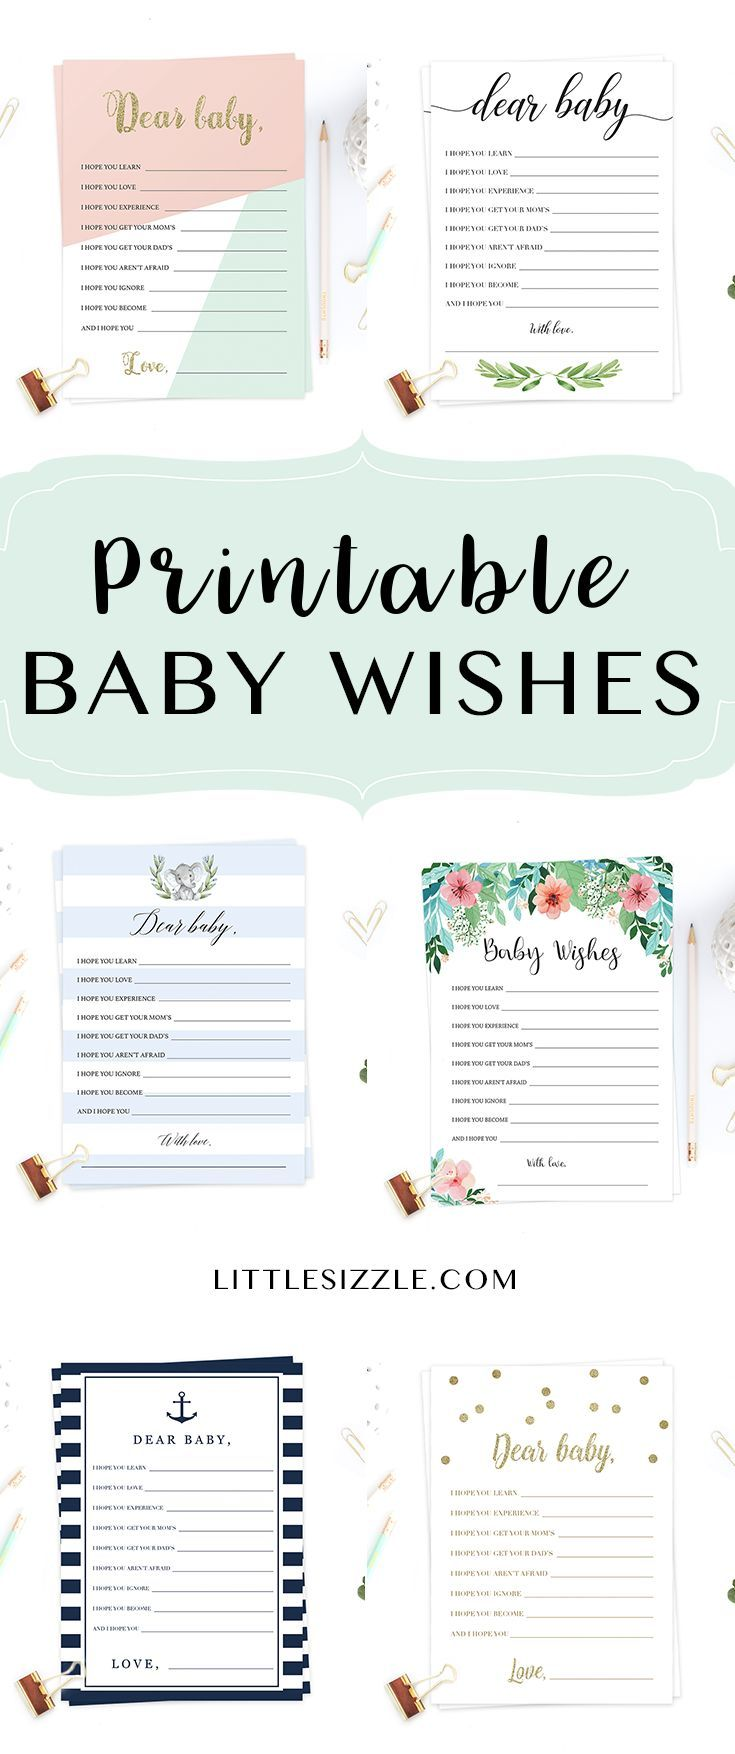 Printable wishes for the new baby cards by LittleSizzle